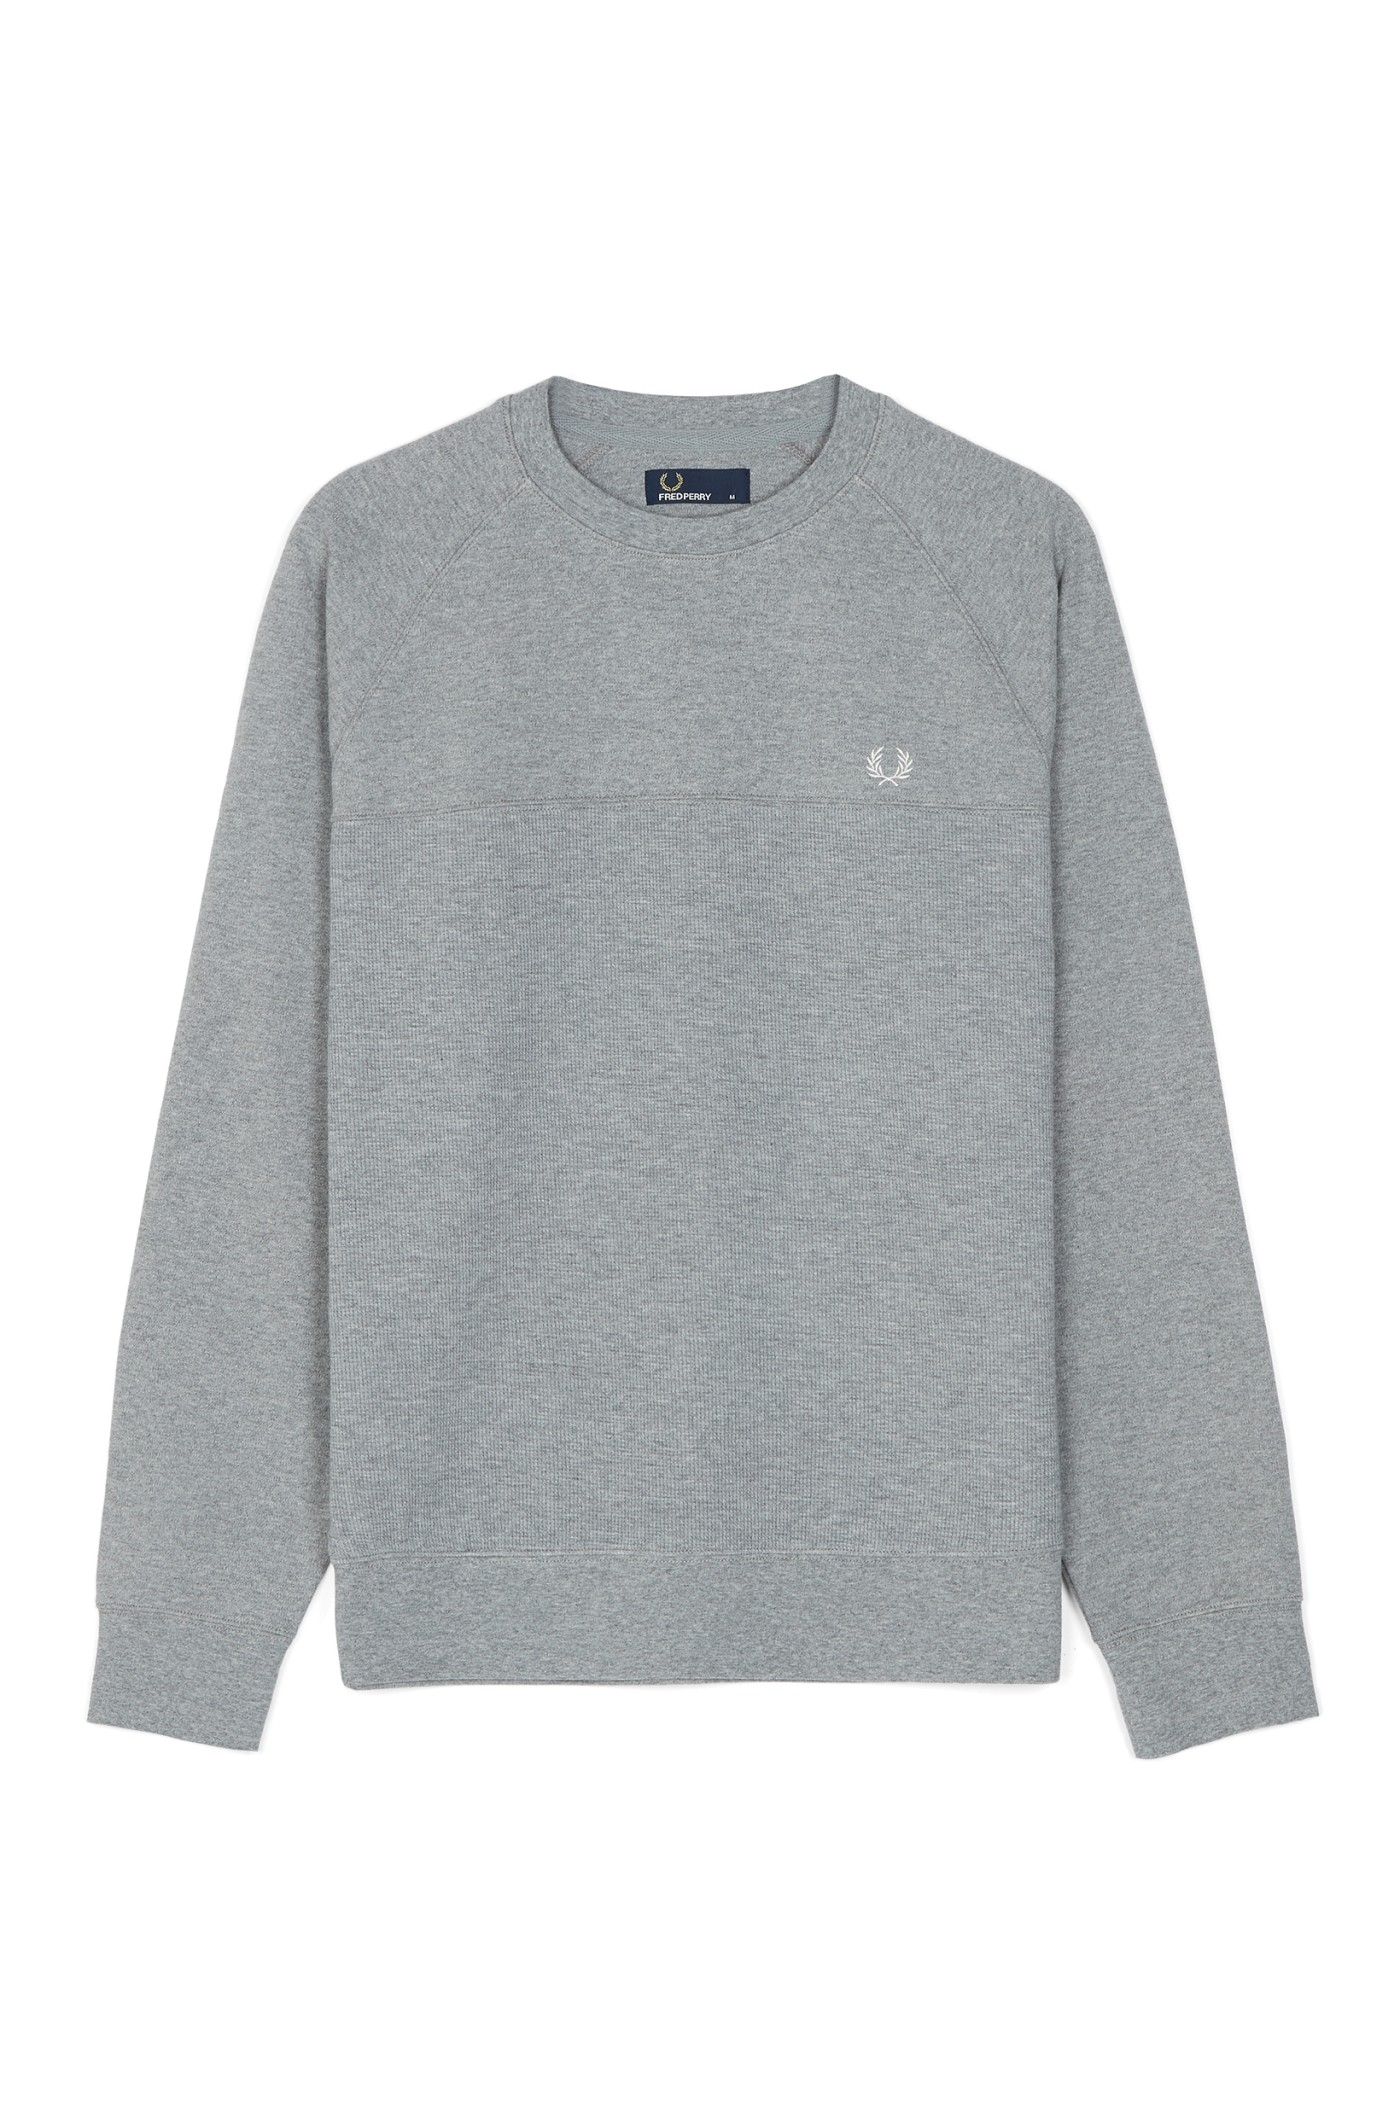 Fred Perry Textured Panel Crew Neck Sweatshirt